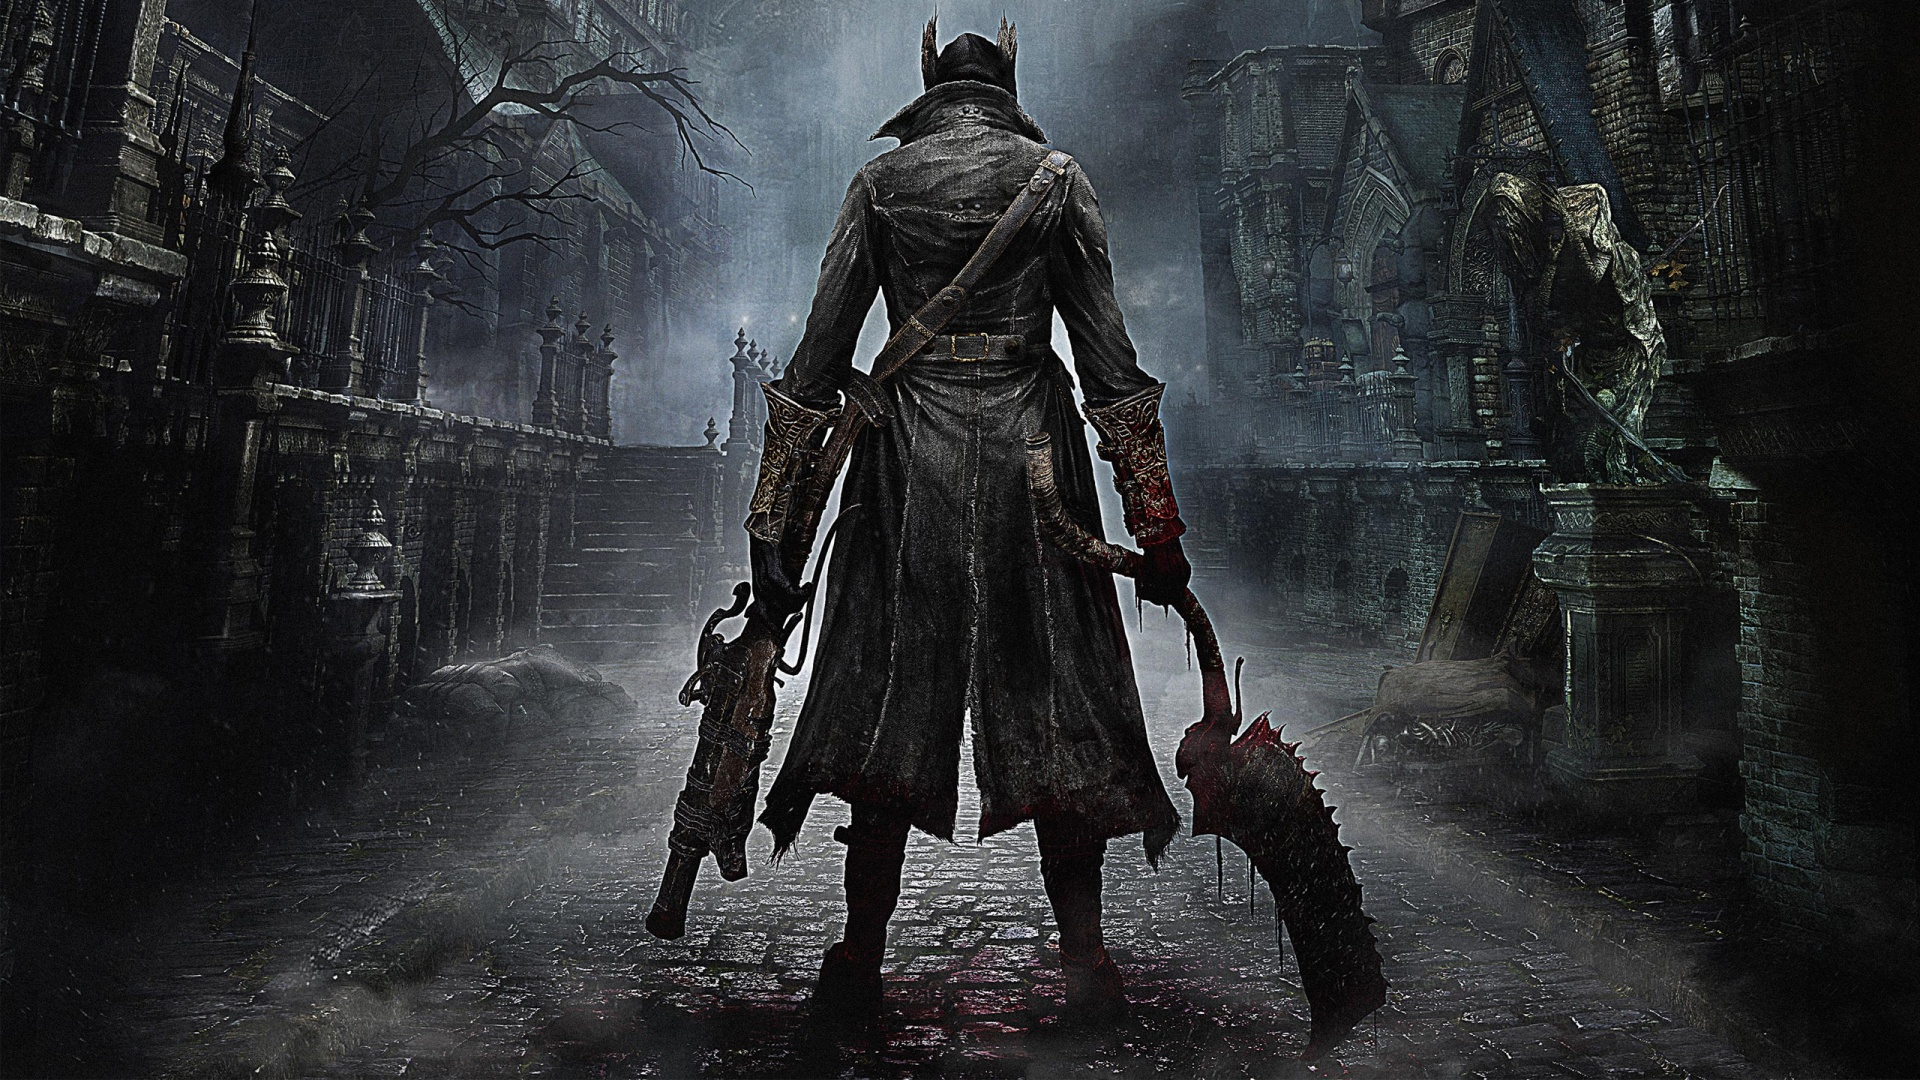 bloodborne - Bloodborne Is Violent and Scary, and People Love That